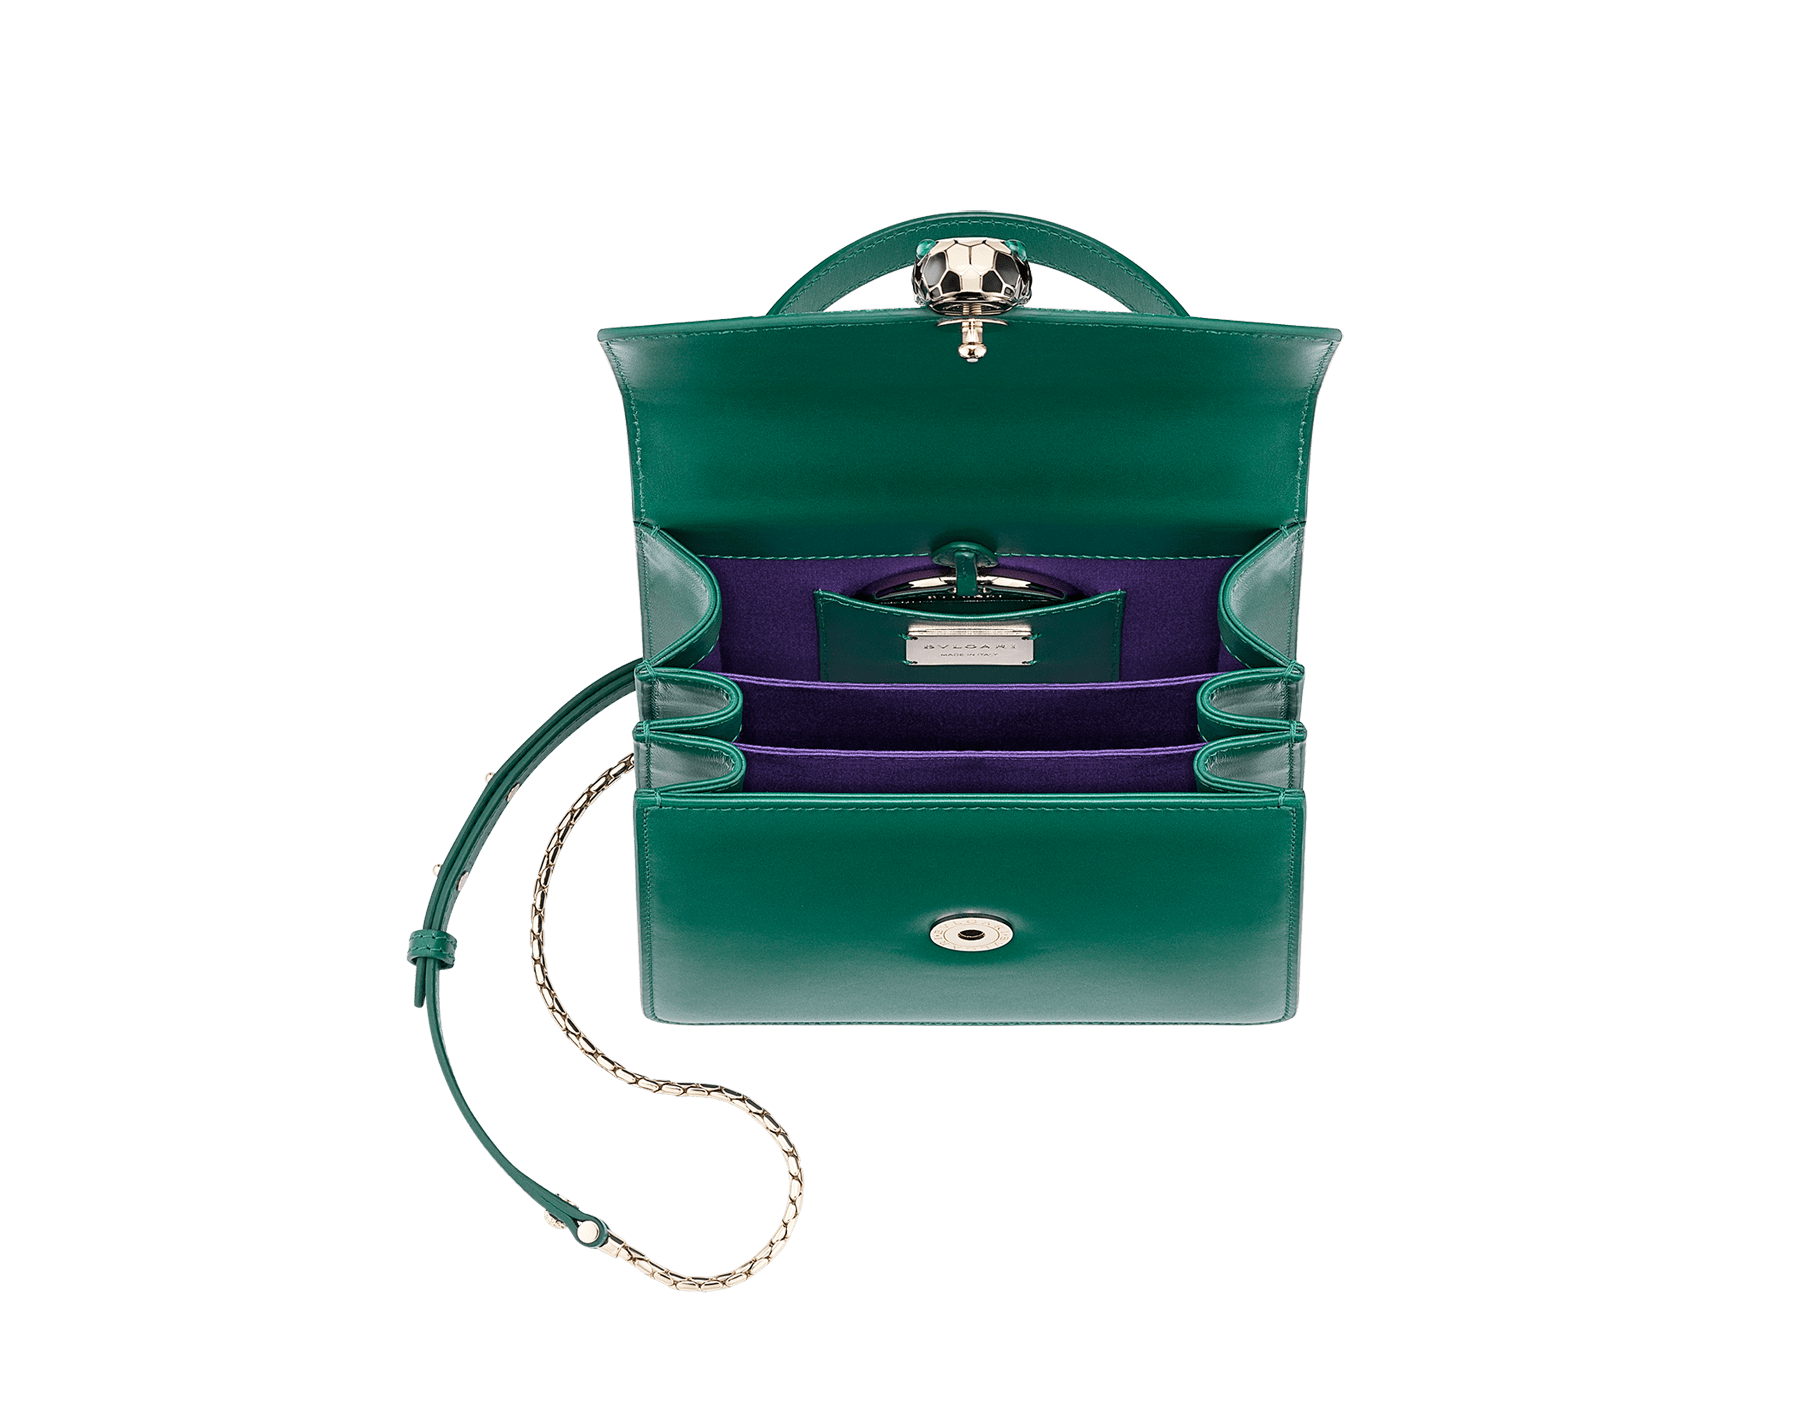 Flap cover bag Serpenti Forever in emerald green galuchat skin and emerald green calf leather. 282373 image 3